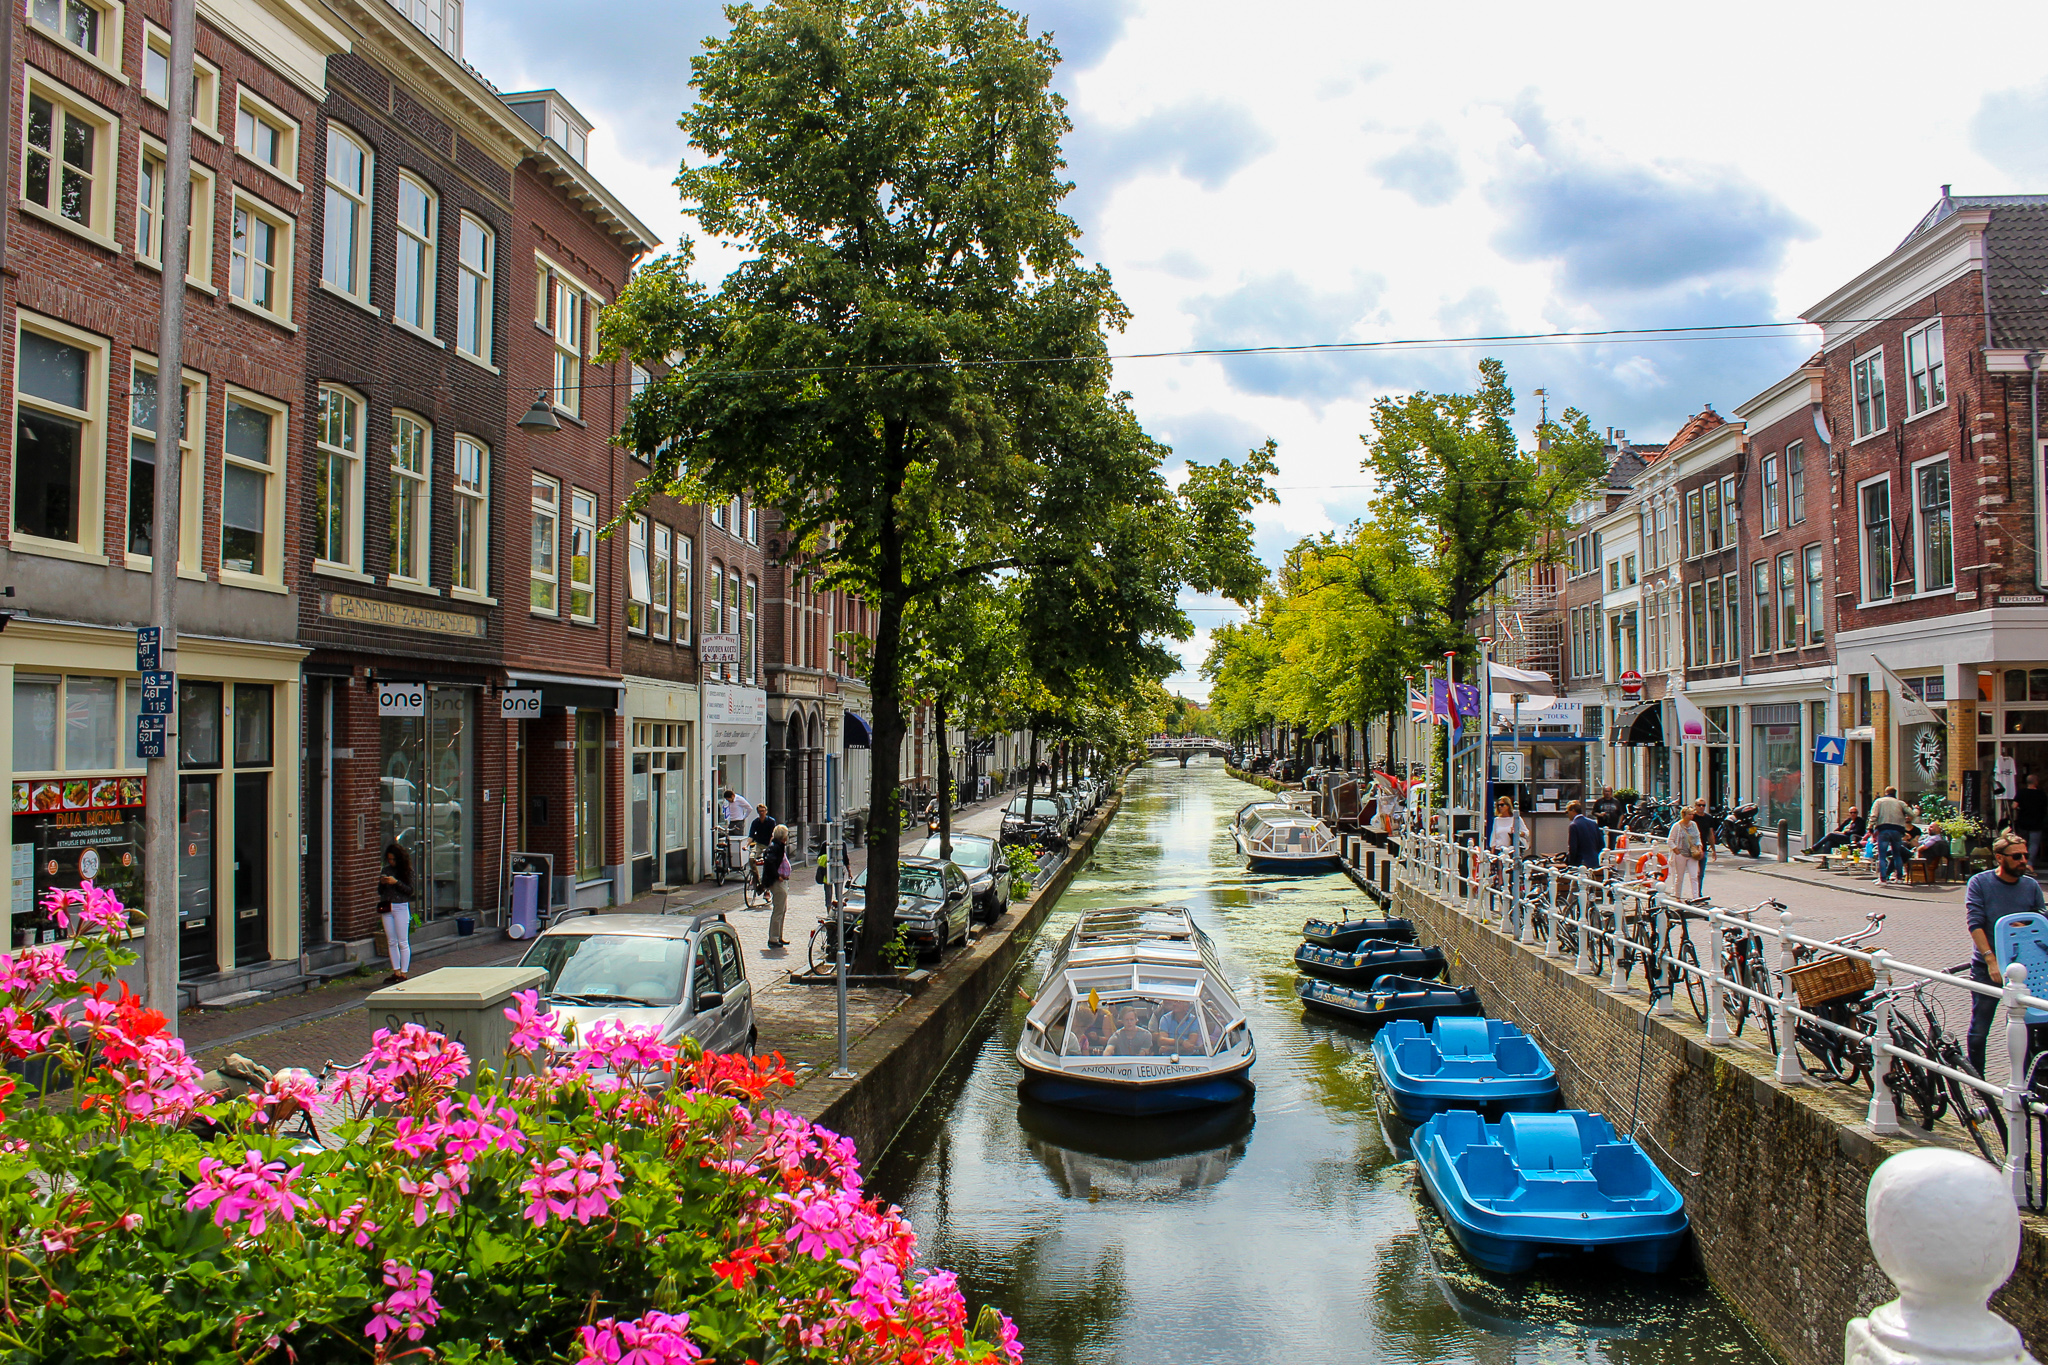 going to smaller towns like delft is great for traveling in your 30s